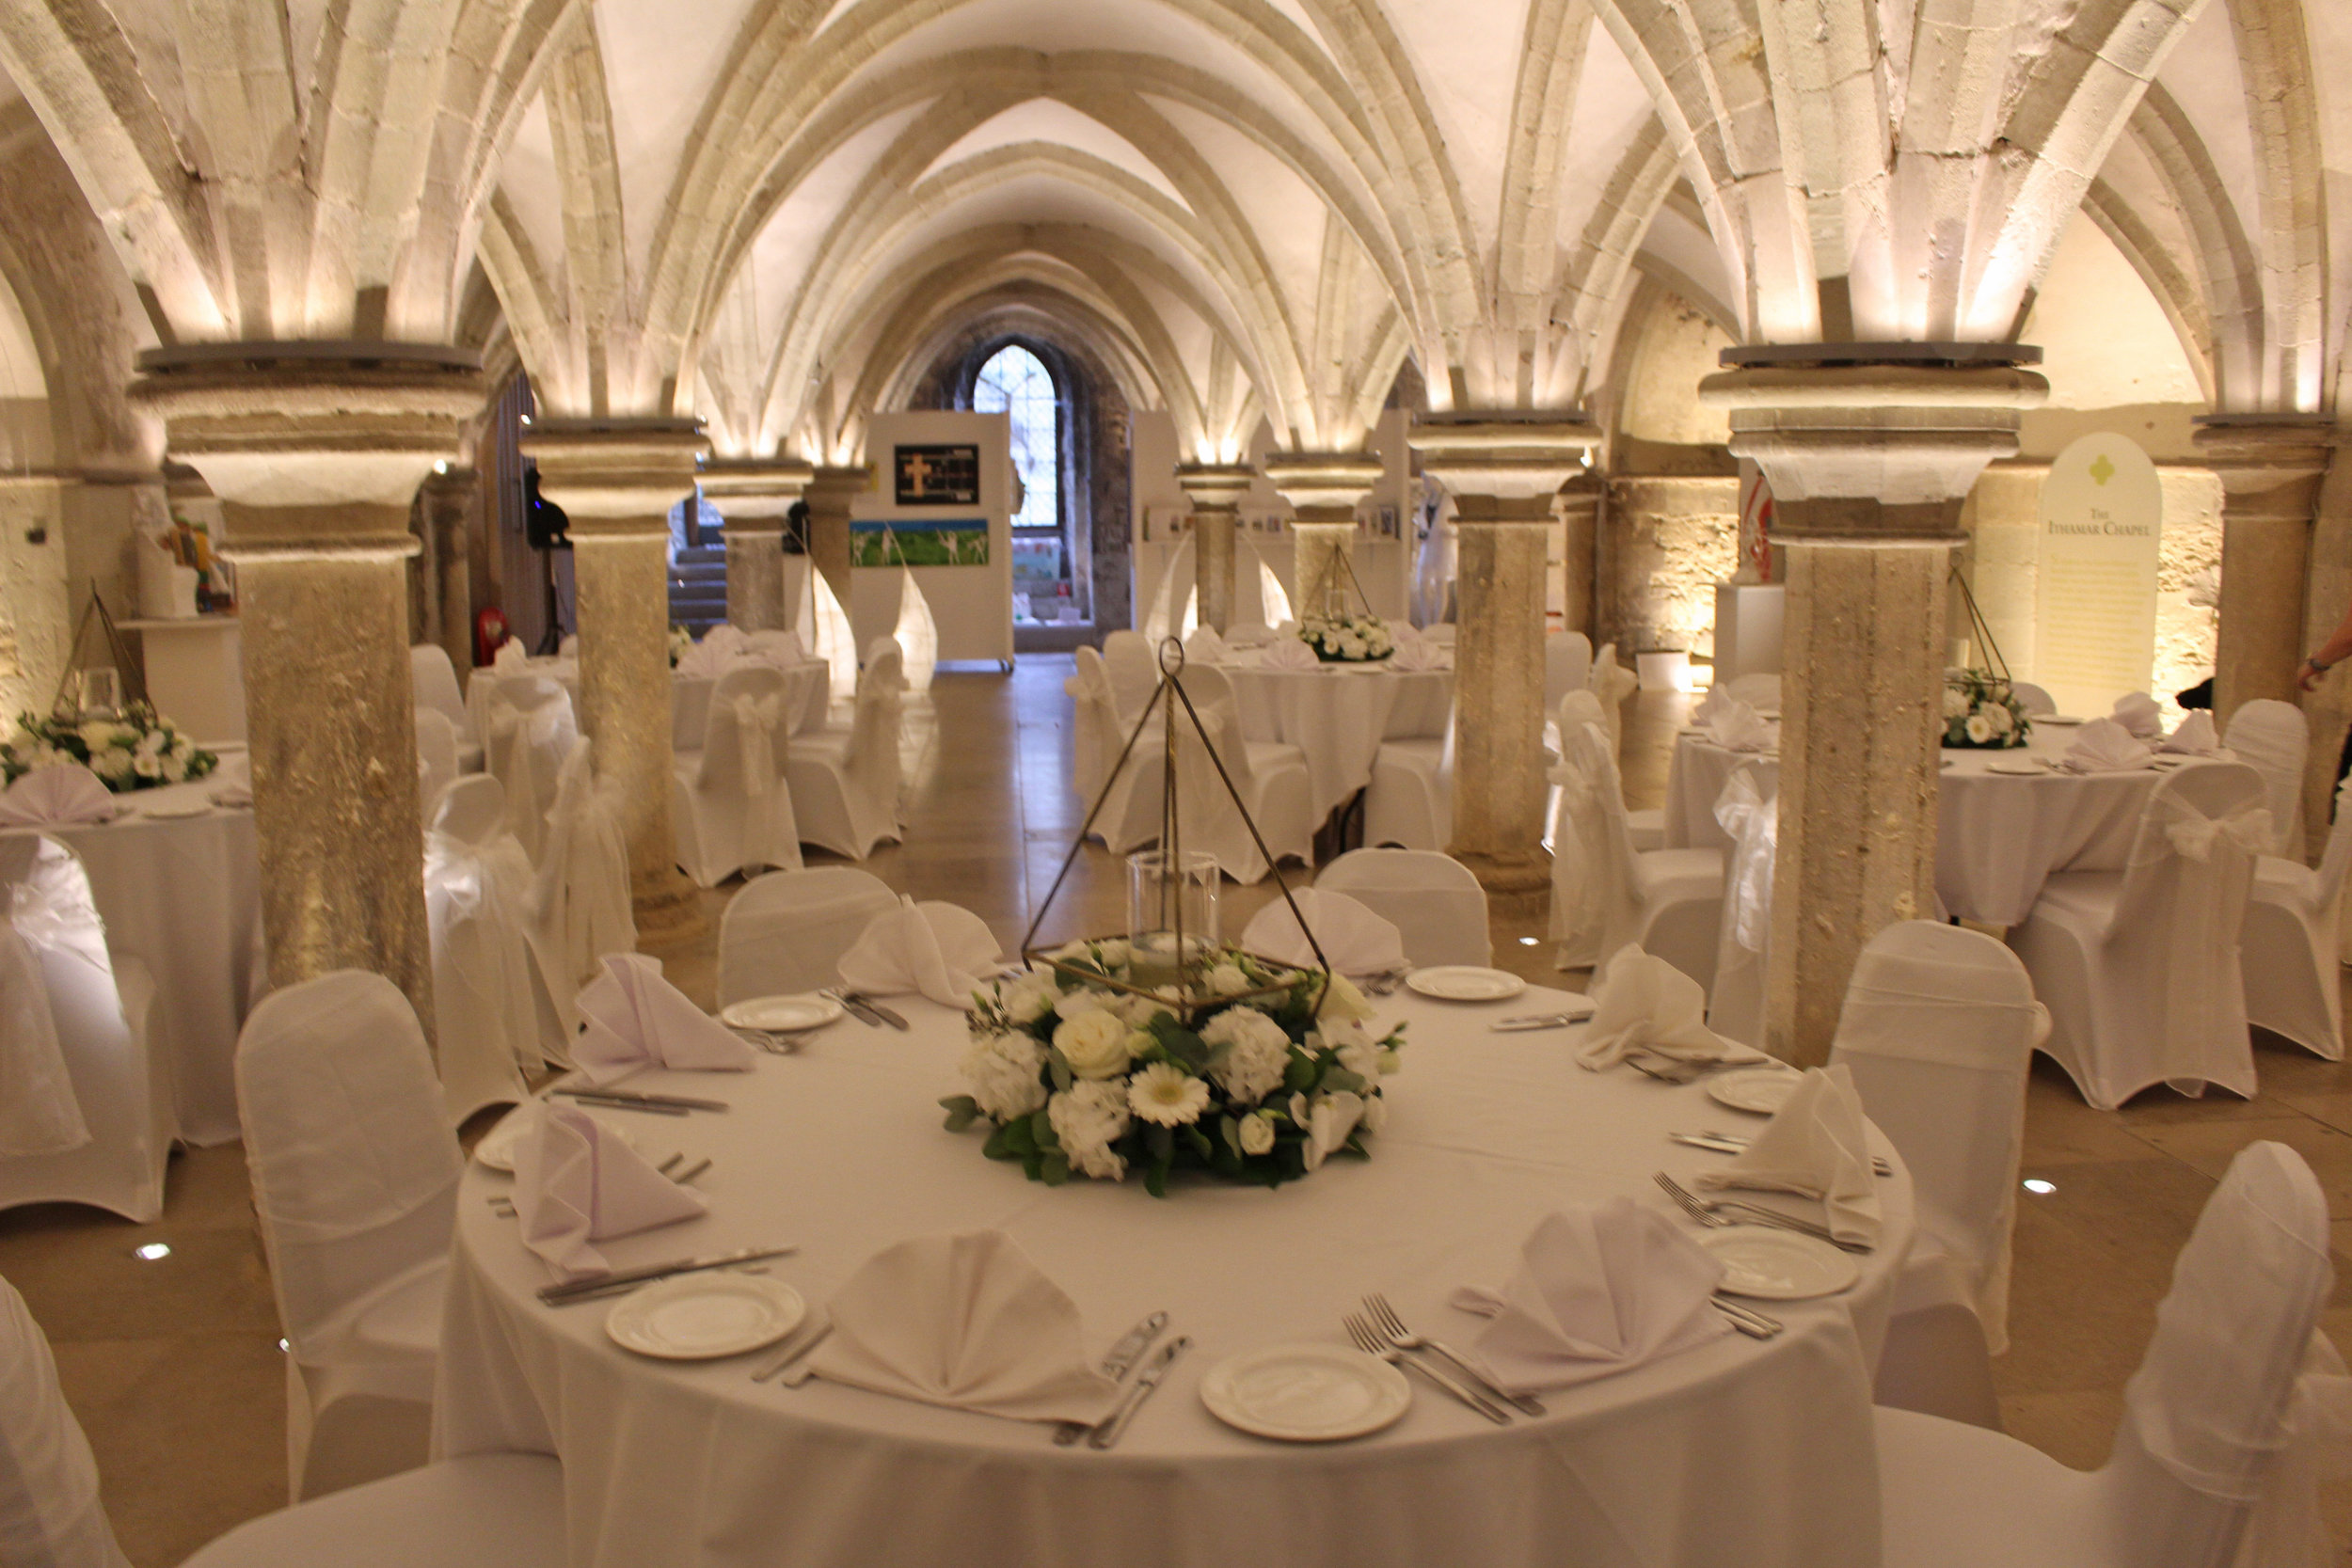 Crypt dressed for a wedding reception